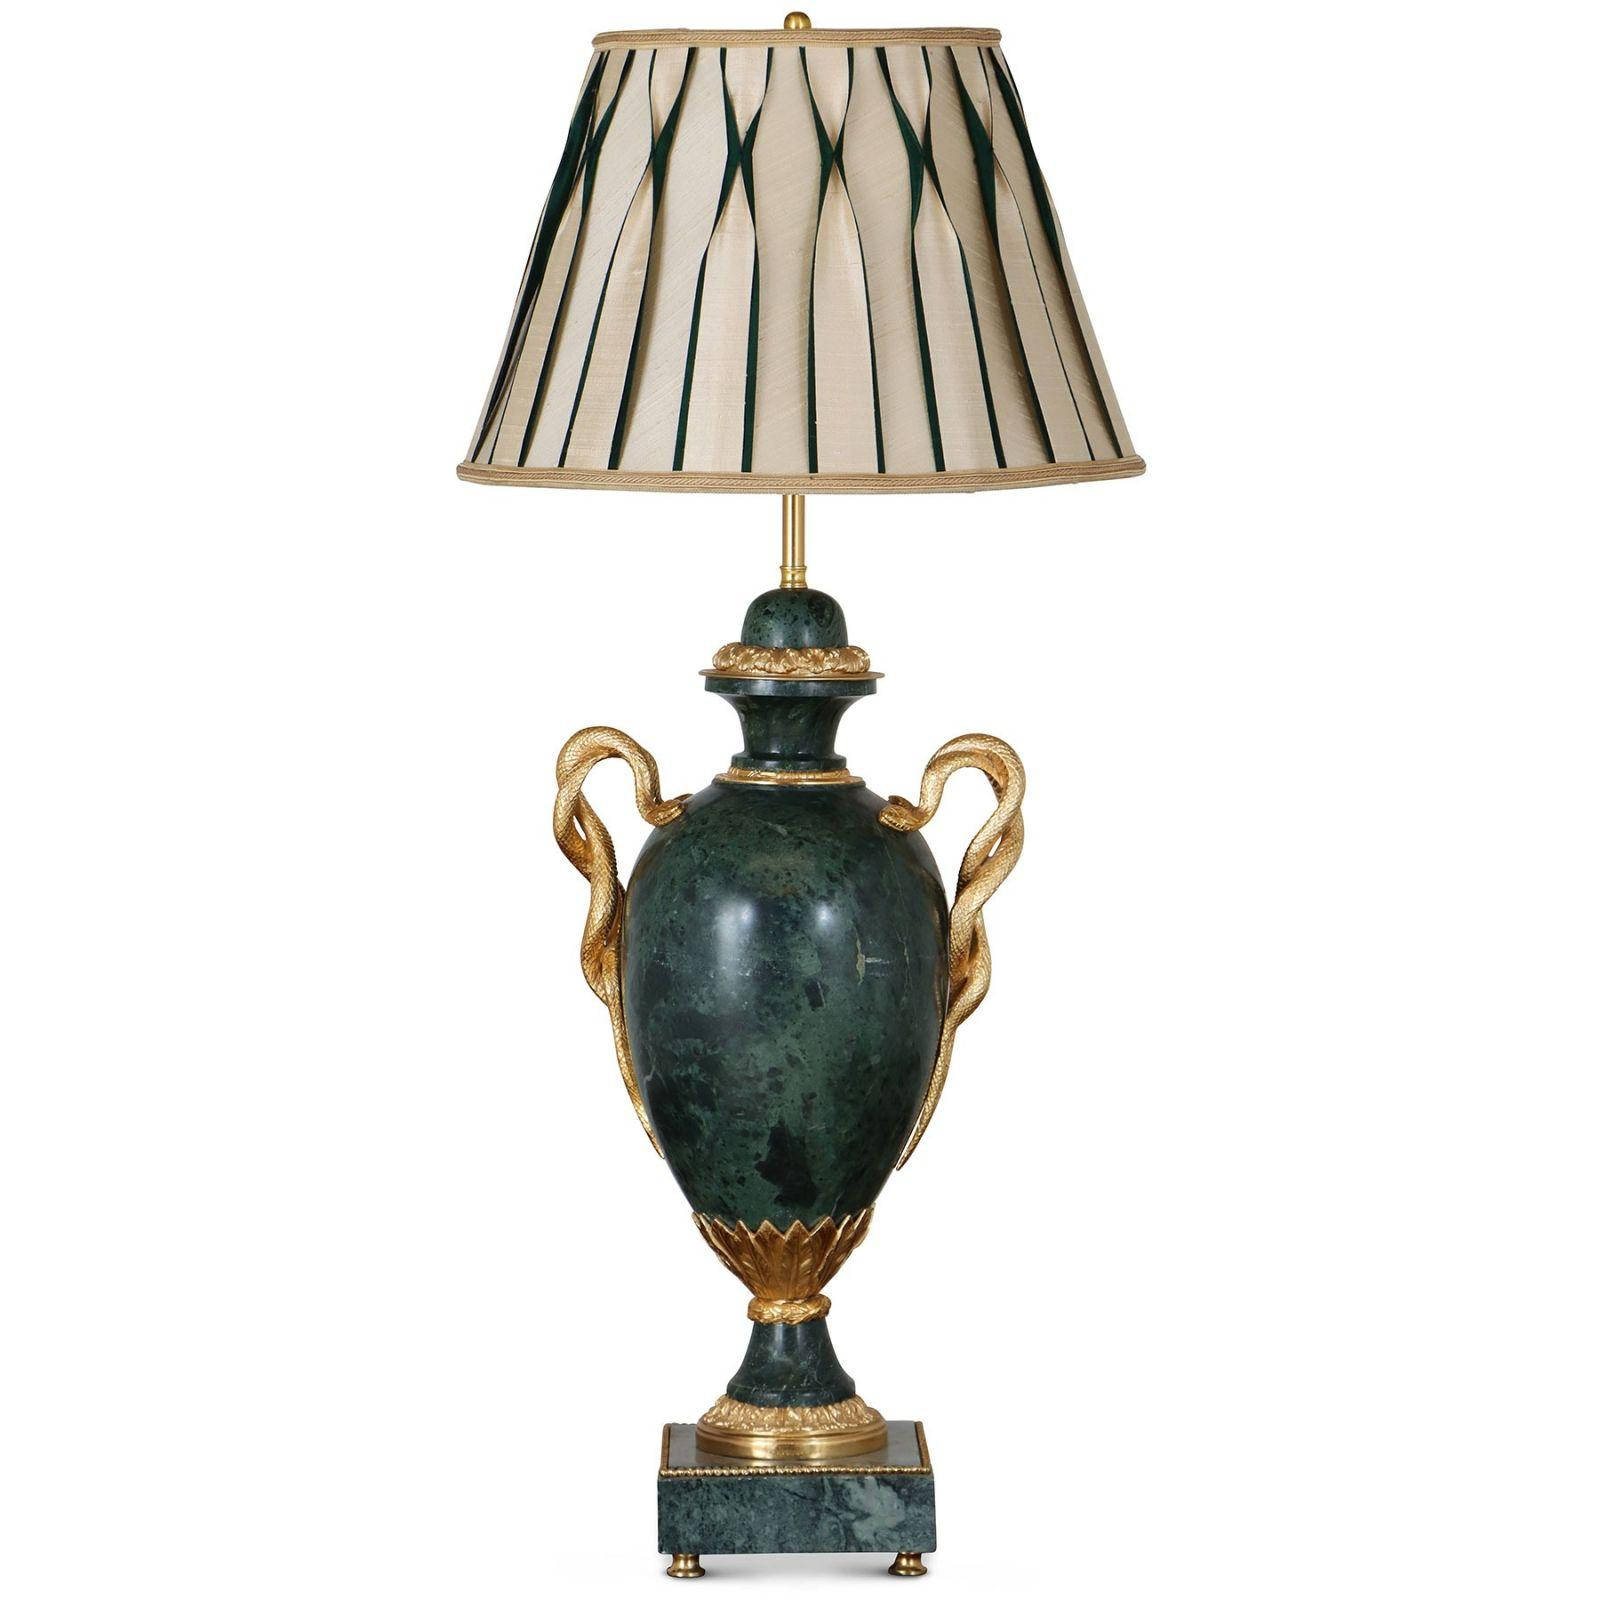 Louis XV style Green Marble table lamp